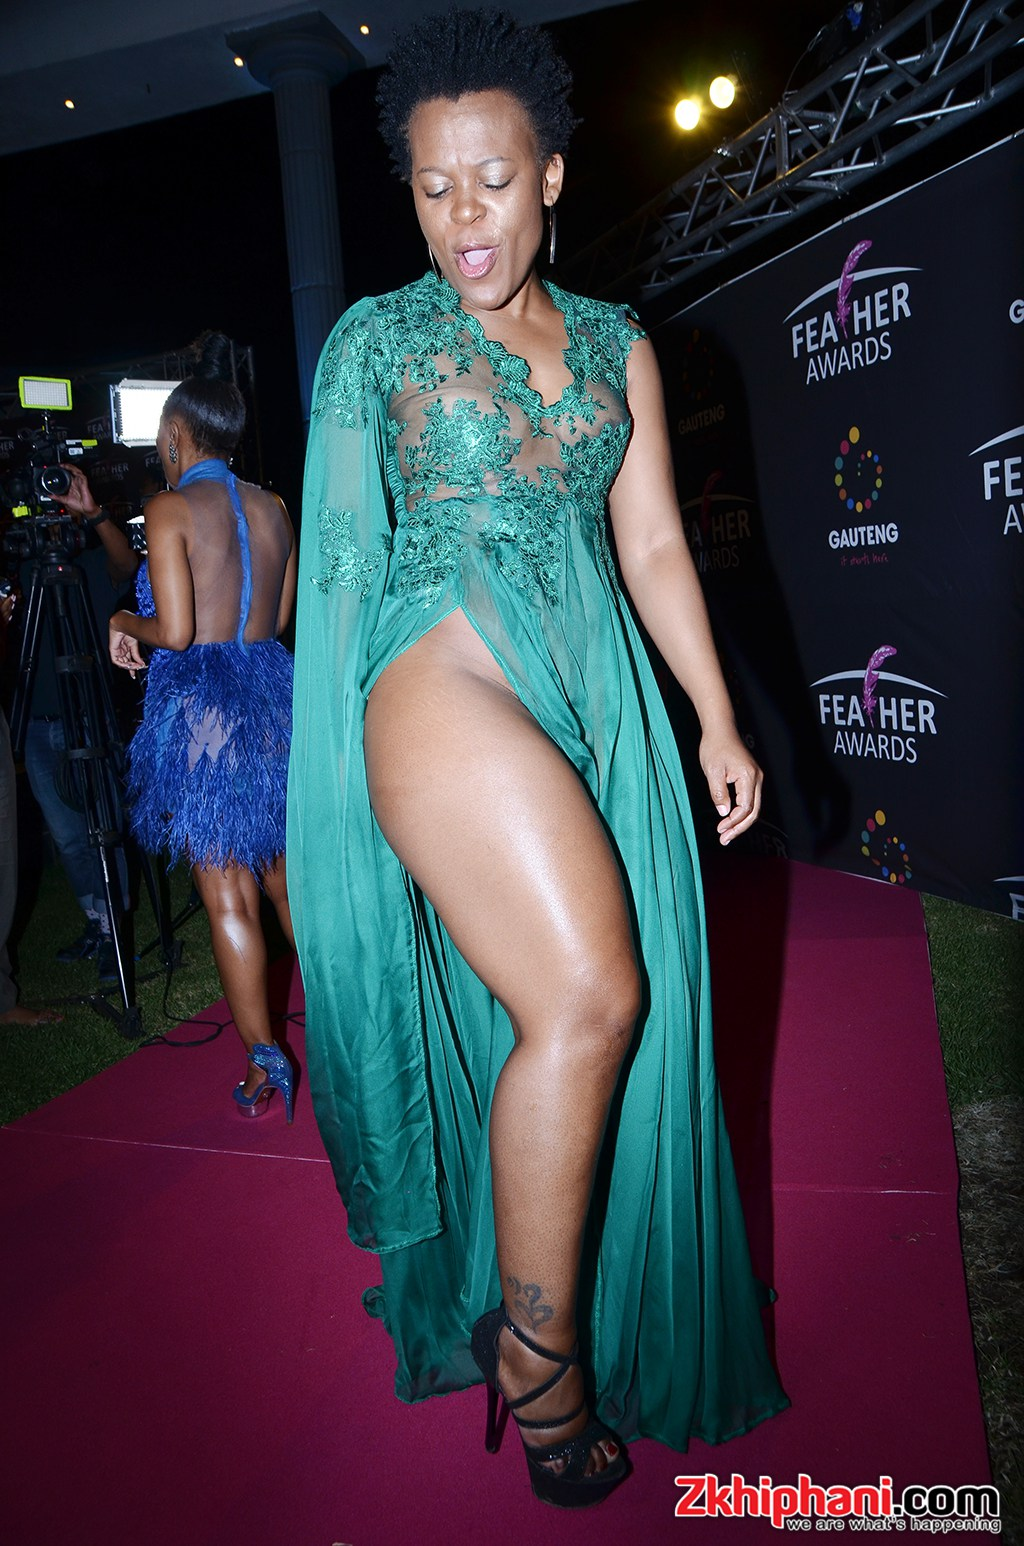 Zodwa Wabantu's entire thighs were conspicuous for anyone who cared to look.photo credit: Zkhiphani.com